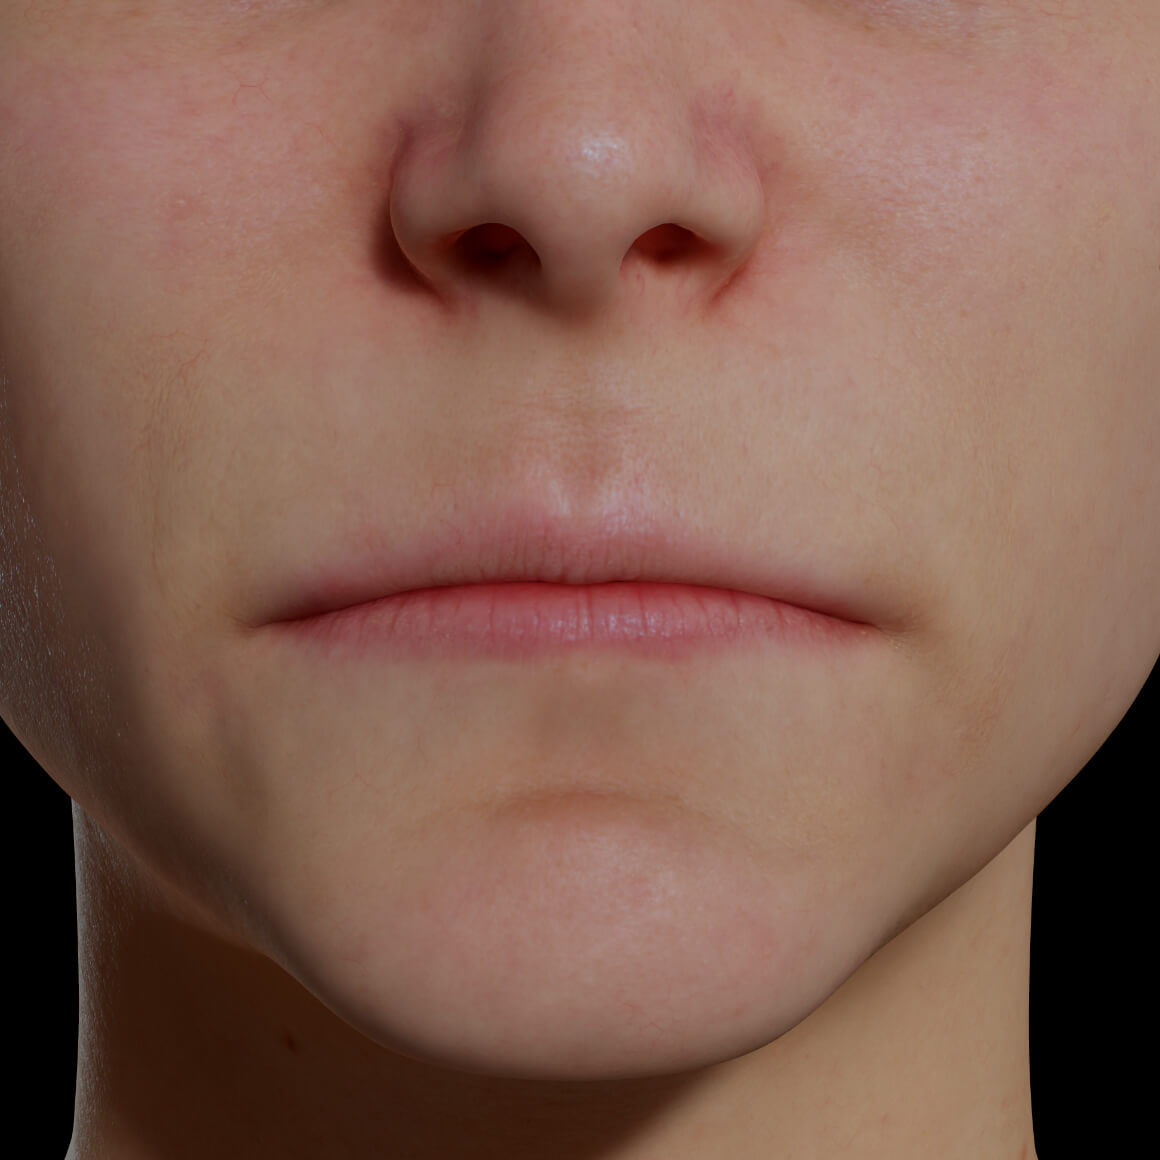 A female patient from Clinique Chloé facing front showing thin, not very voluminous lips